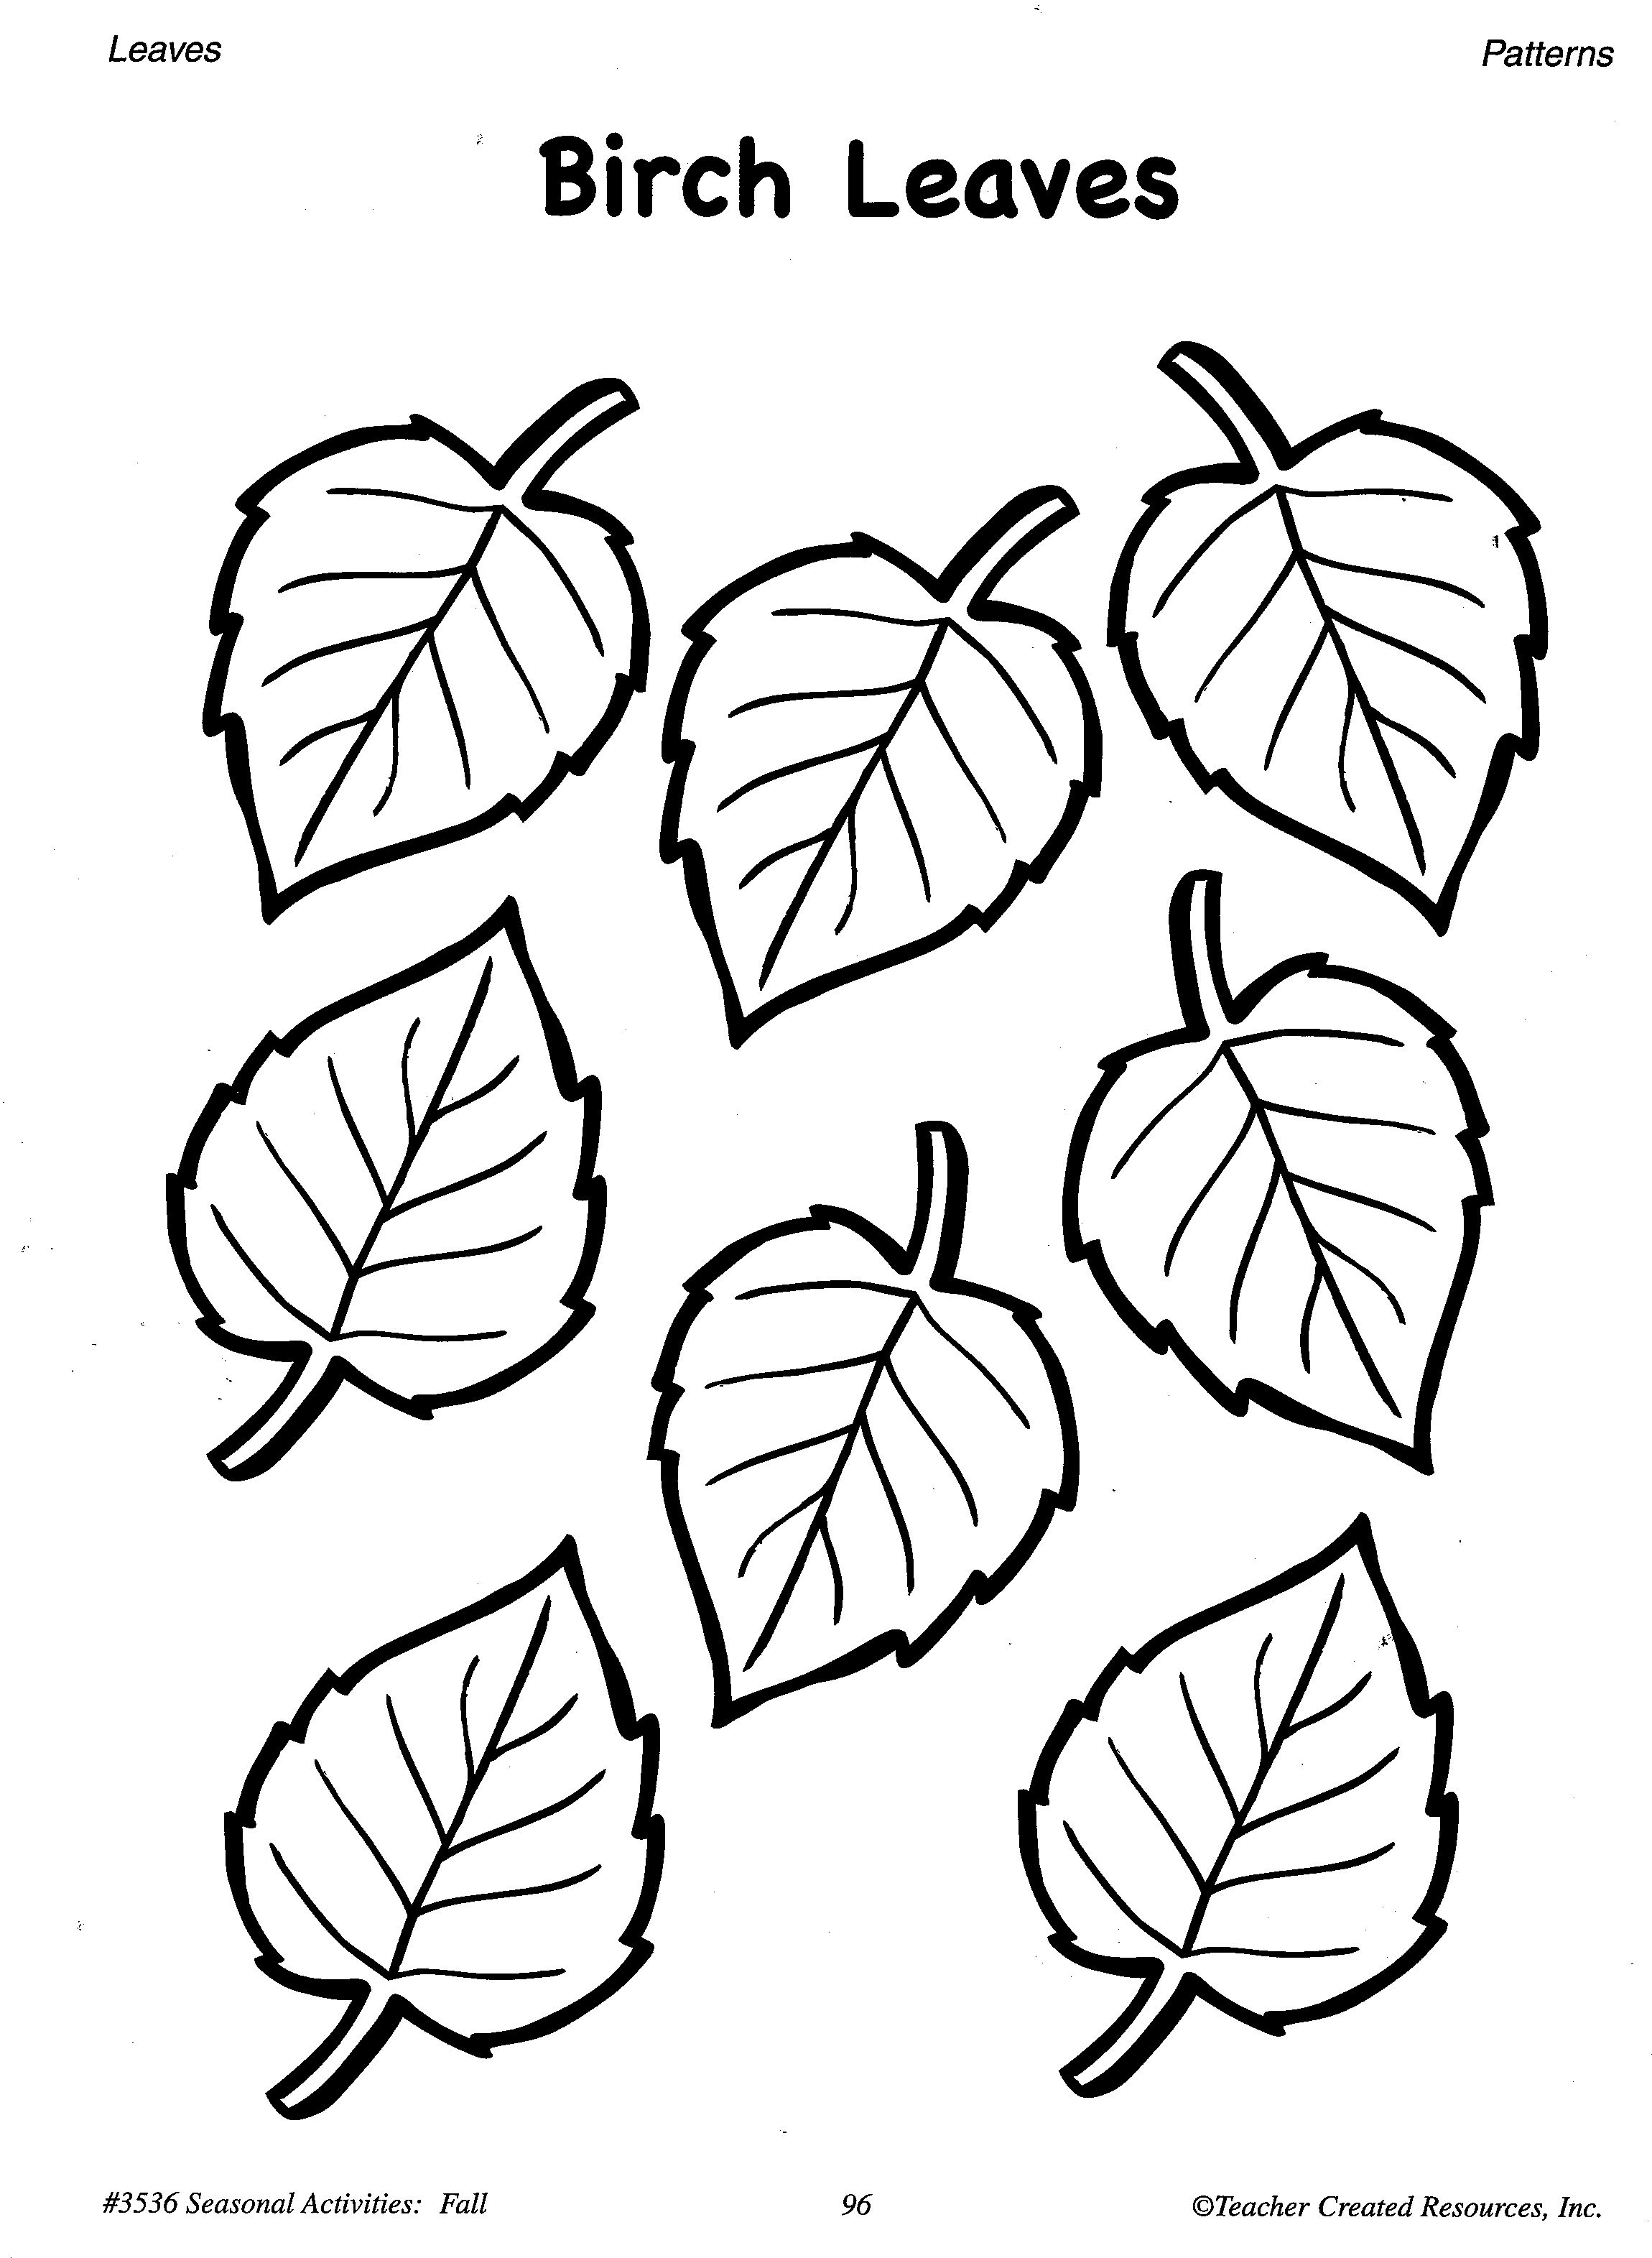 Free Traceable Leaf Patterns Download Free Clip Art Free